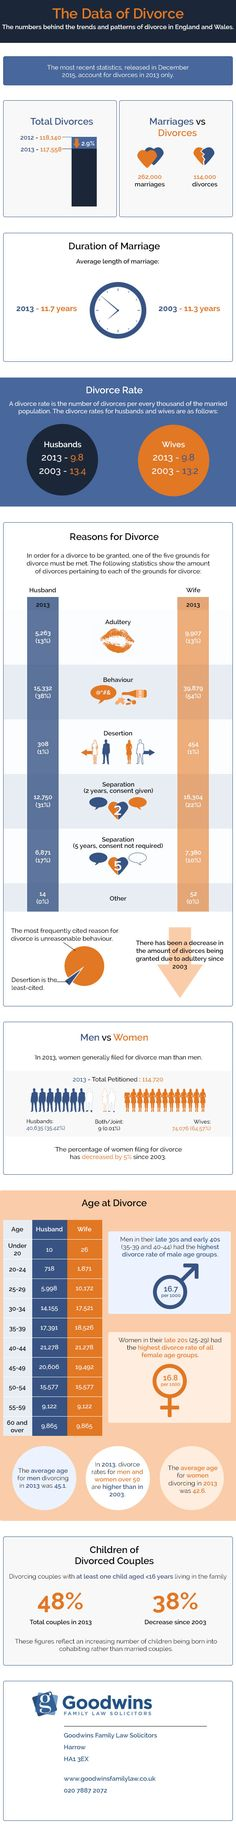 The Data of Divorce [Infographic] - displaying the latest divorce stats for England and Wales 2016